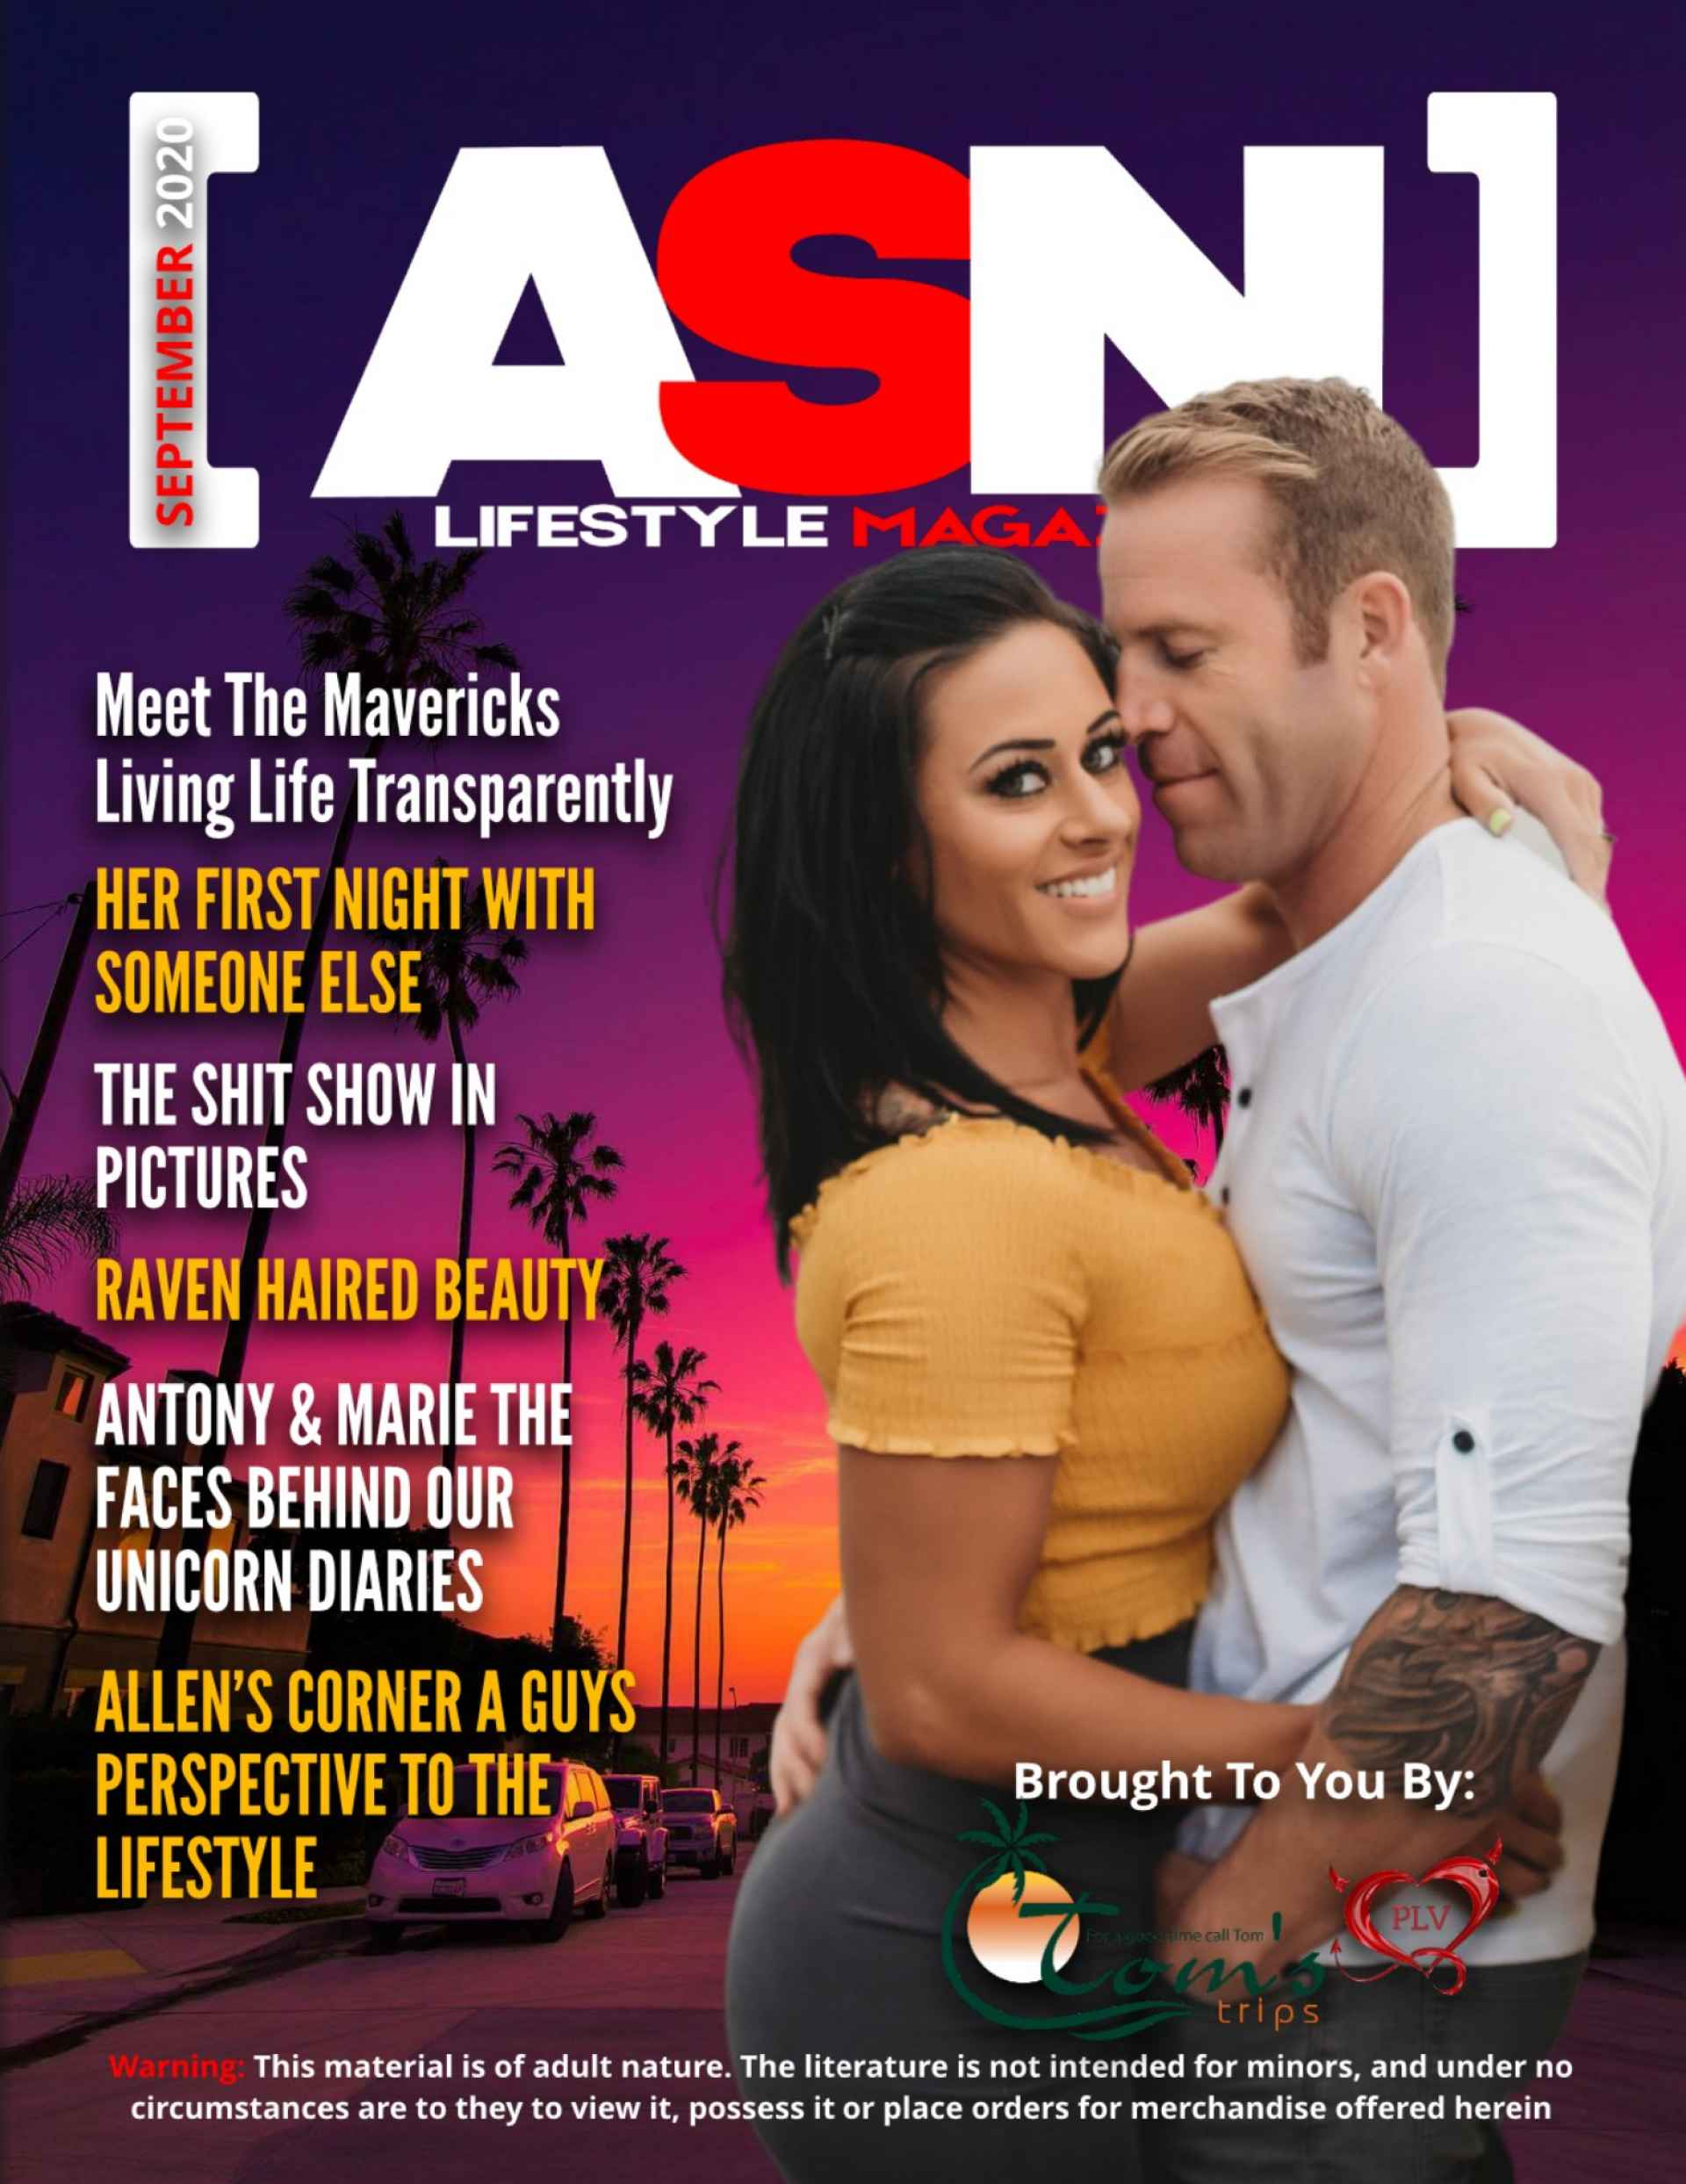 SDC ASN Lifestyle Magazine September 2020 Cover